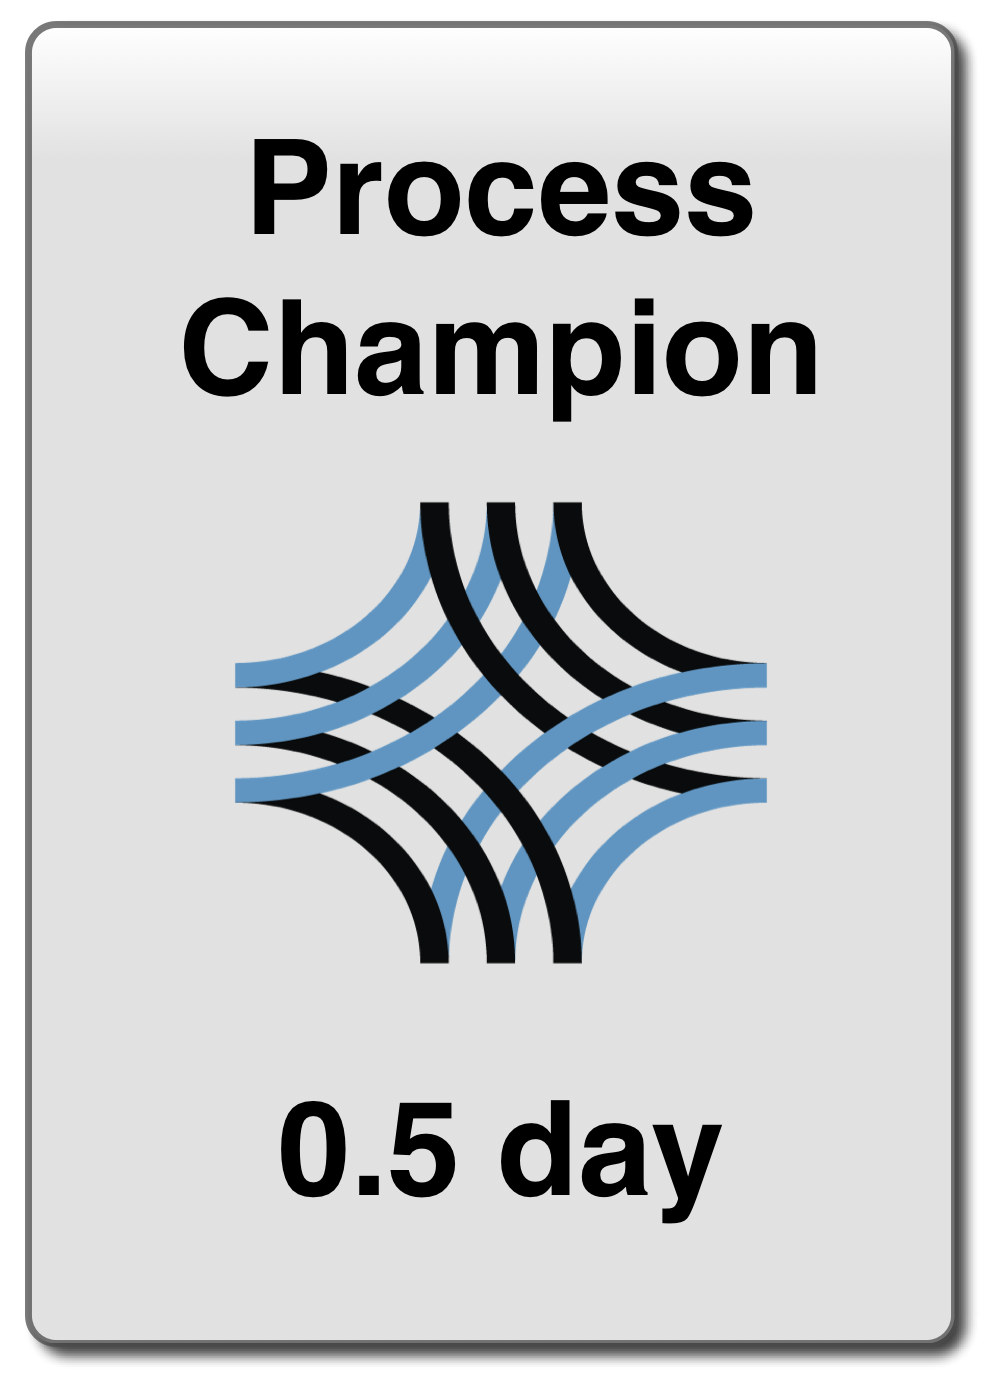 Process Champion Training